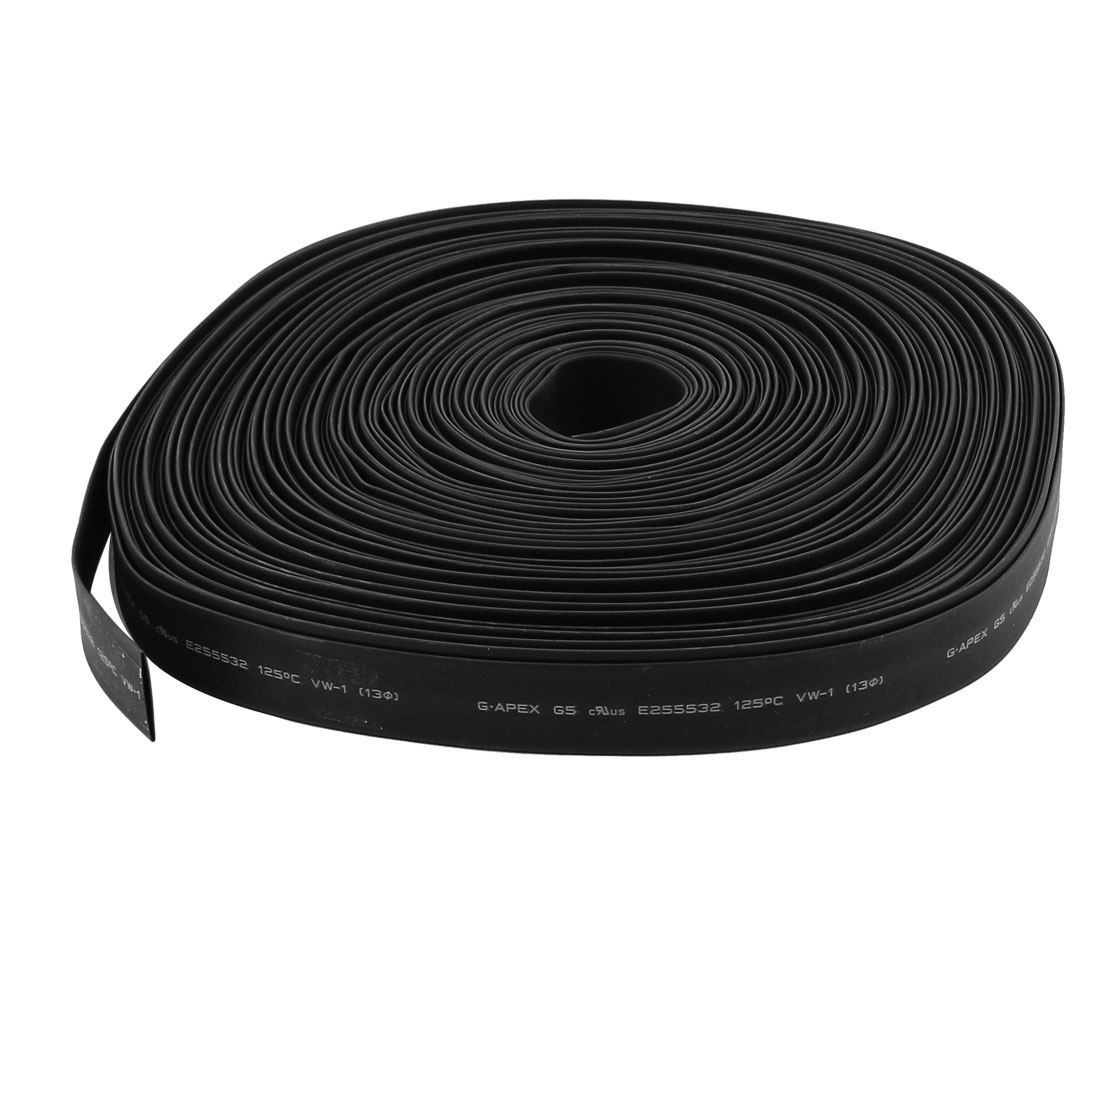 30m 13mm Dia Insulated PE Heat Shrink Tube 2:1 Shrinkage Ratio Waterproof Black